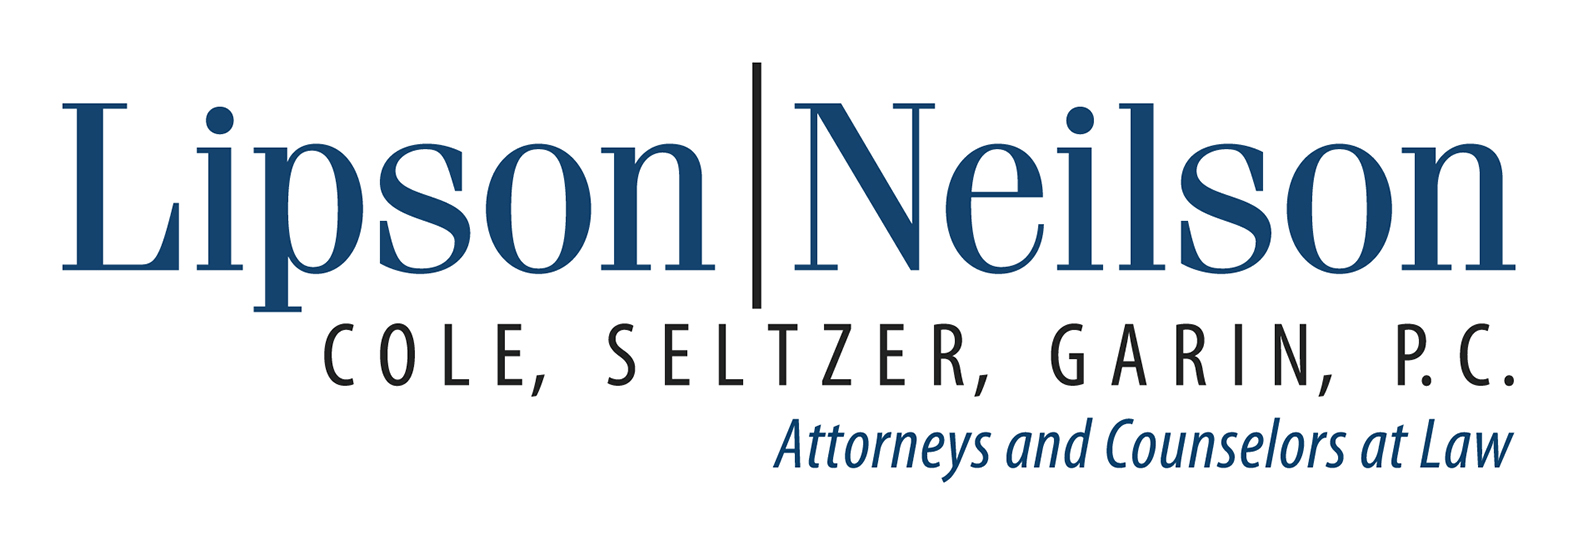 State Bar of Michigan Logo Lipson Neilson Logo